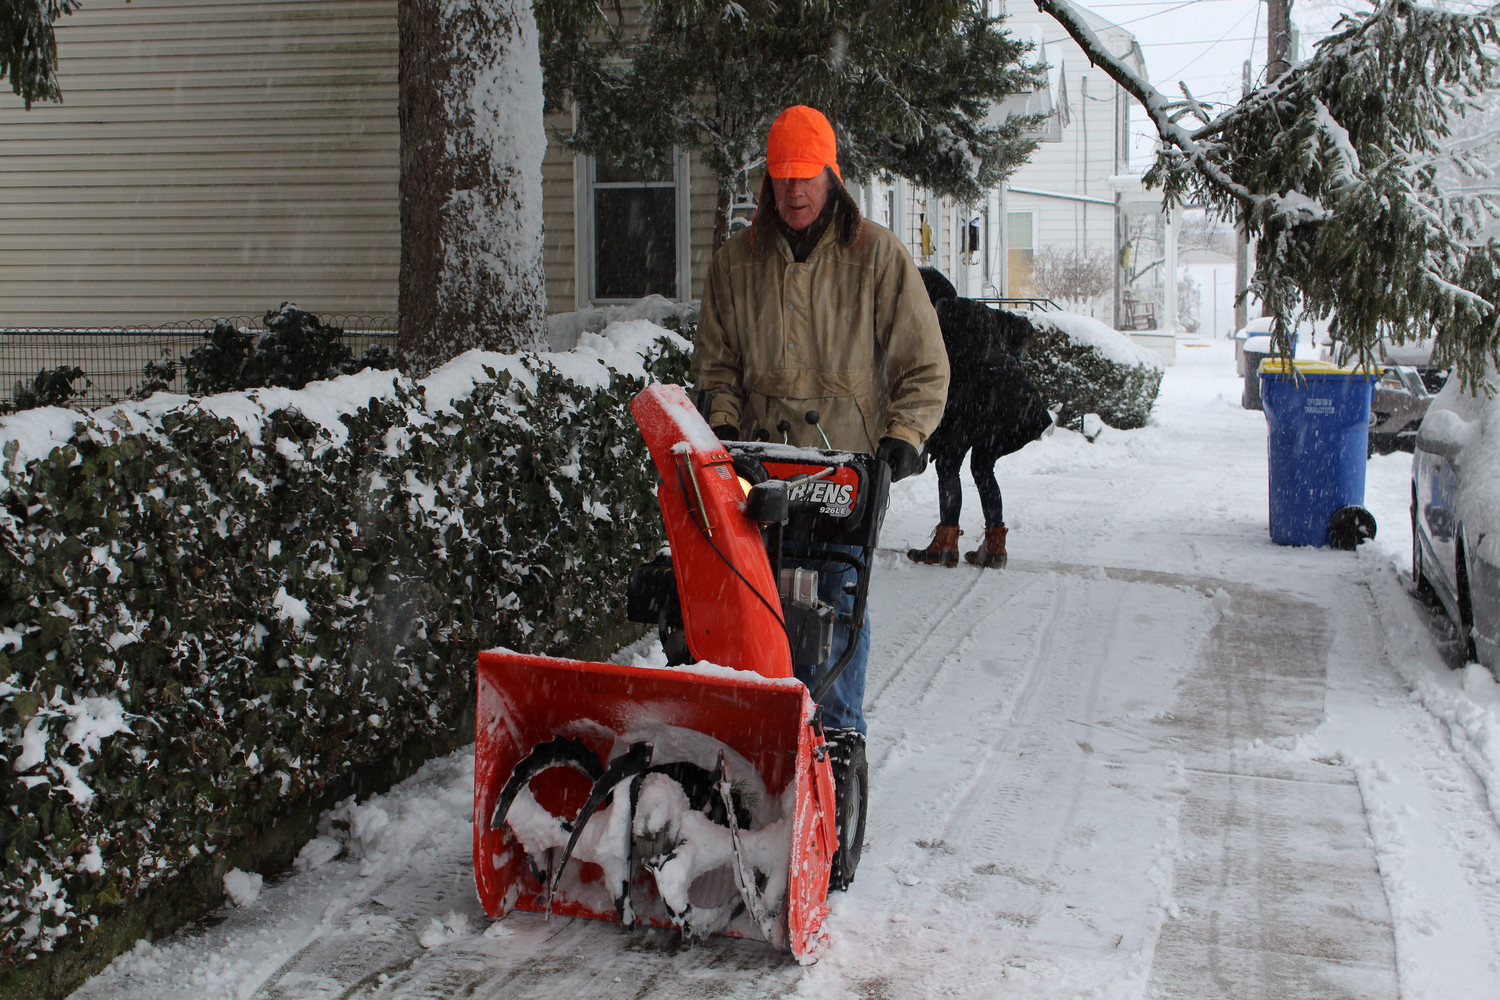 Charlie Bowen clears the snow in front of his house after the snowfall.